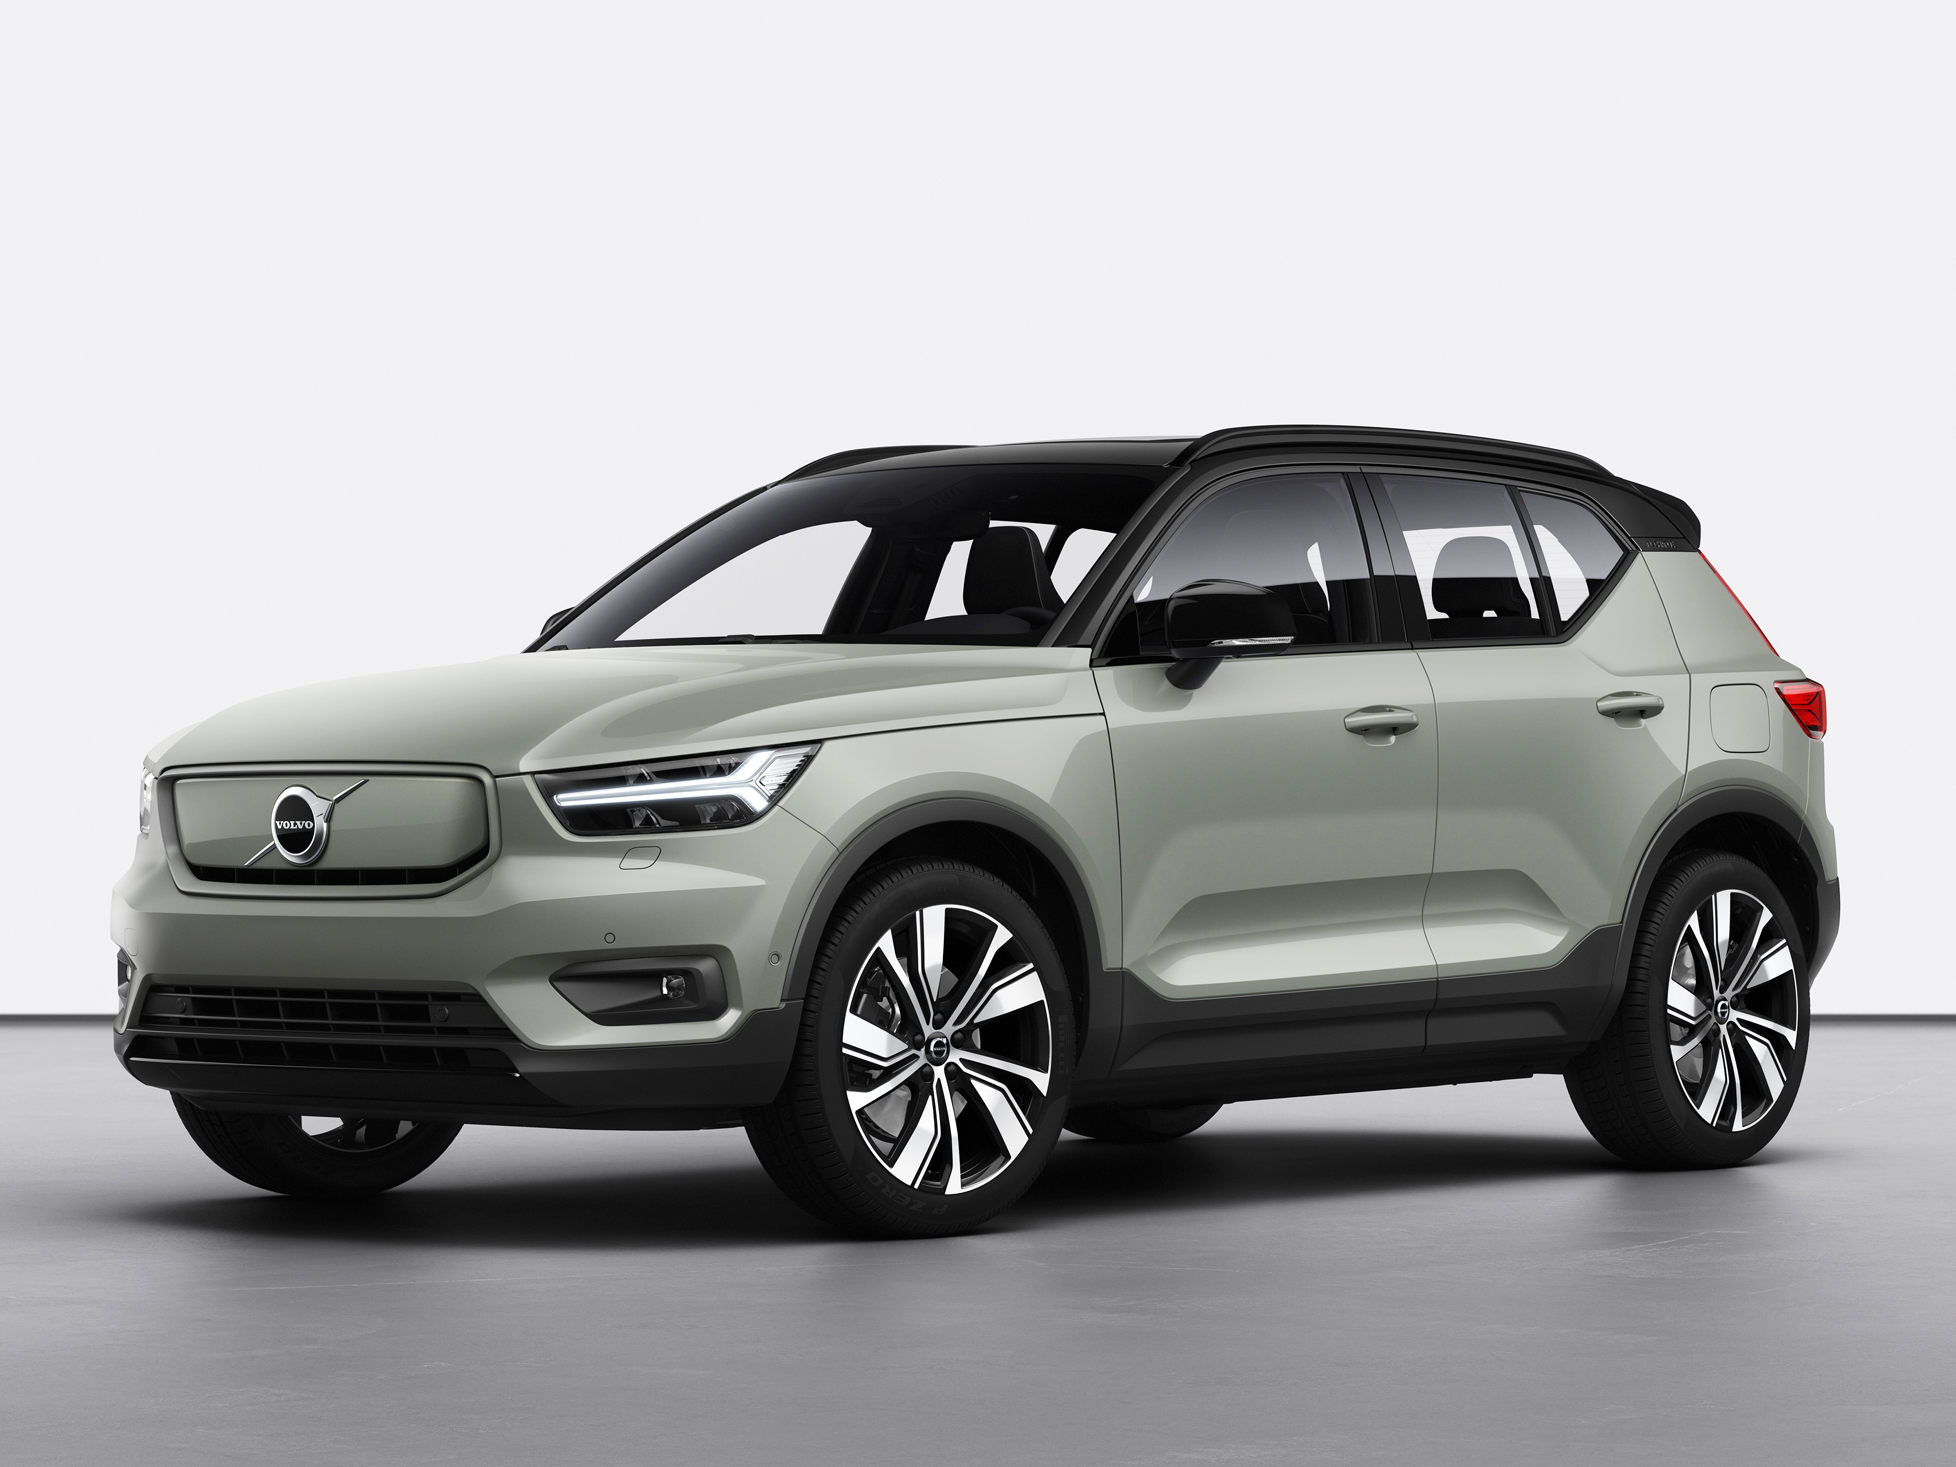 Volvo company plans to go all electric